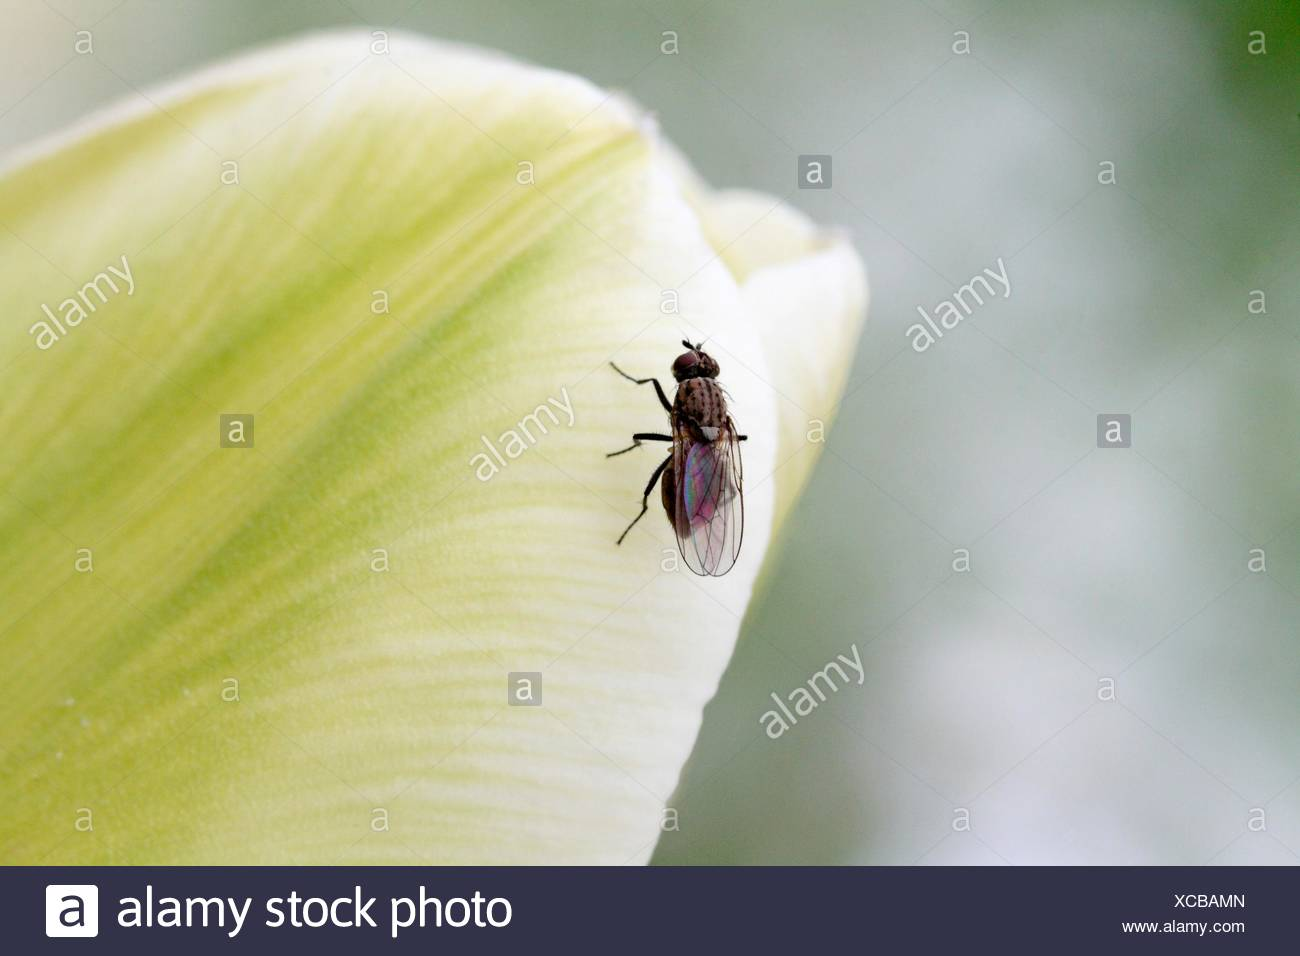 Fly on white tulip  Small fly perched on the tip of a newly opened white tulip which is lime green - Stock Image